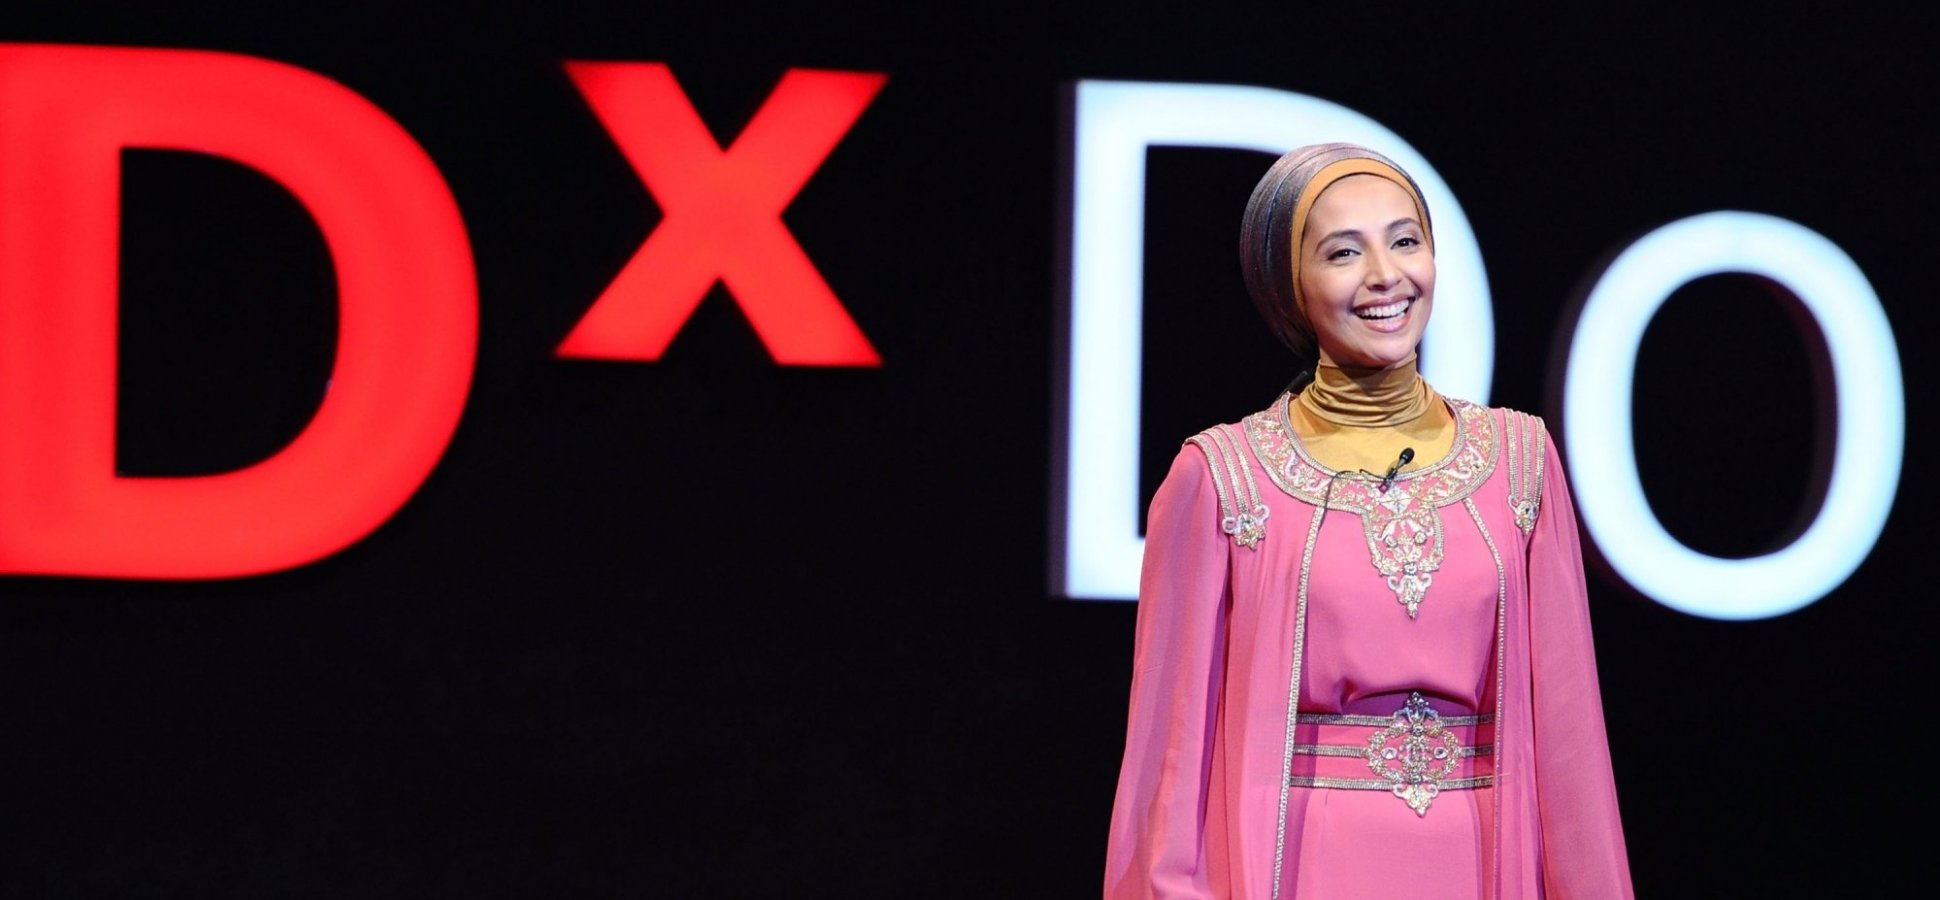 6 Things Great Speakers Always Do: A TEDx Organizer Shares the Secrets of Becoming a TEDx Speaker